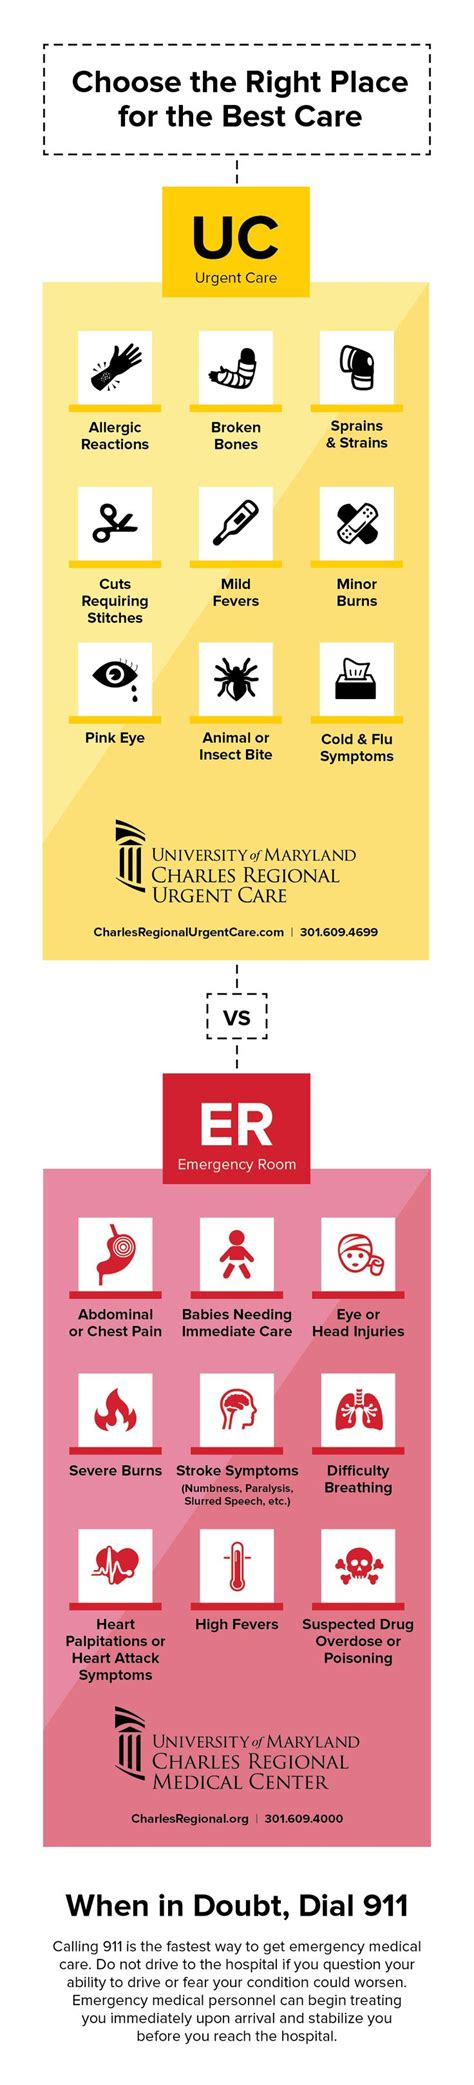 if i go to emergency room with no insurance room should i go to the emergency room rooms